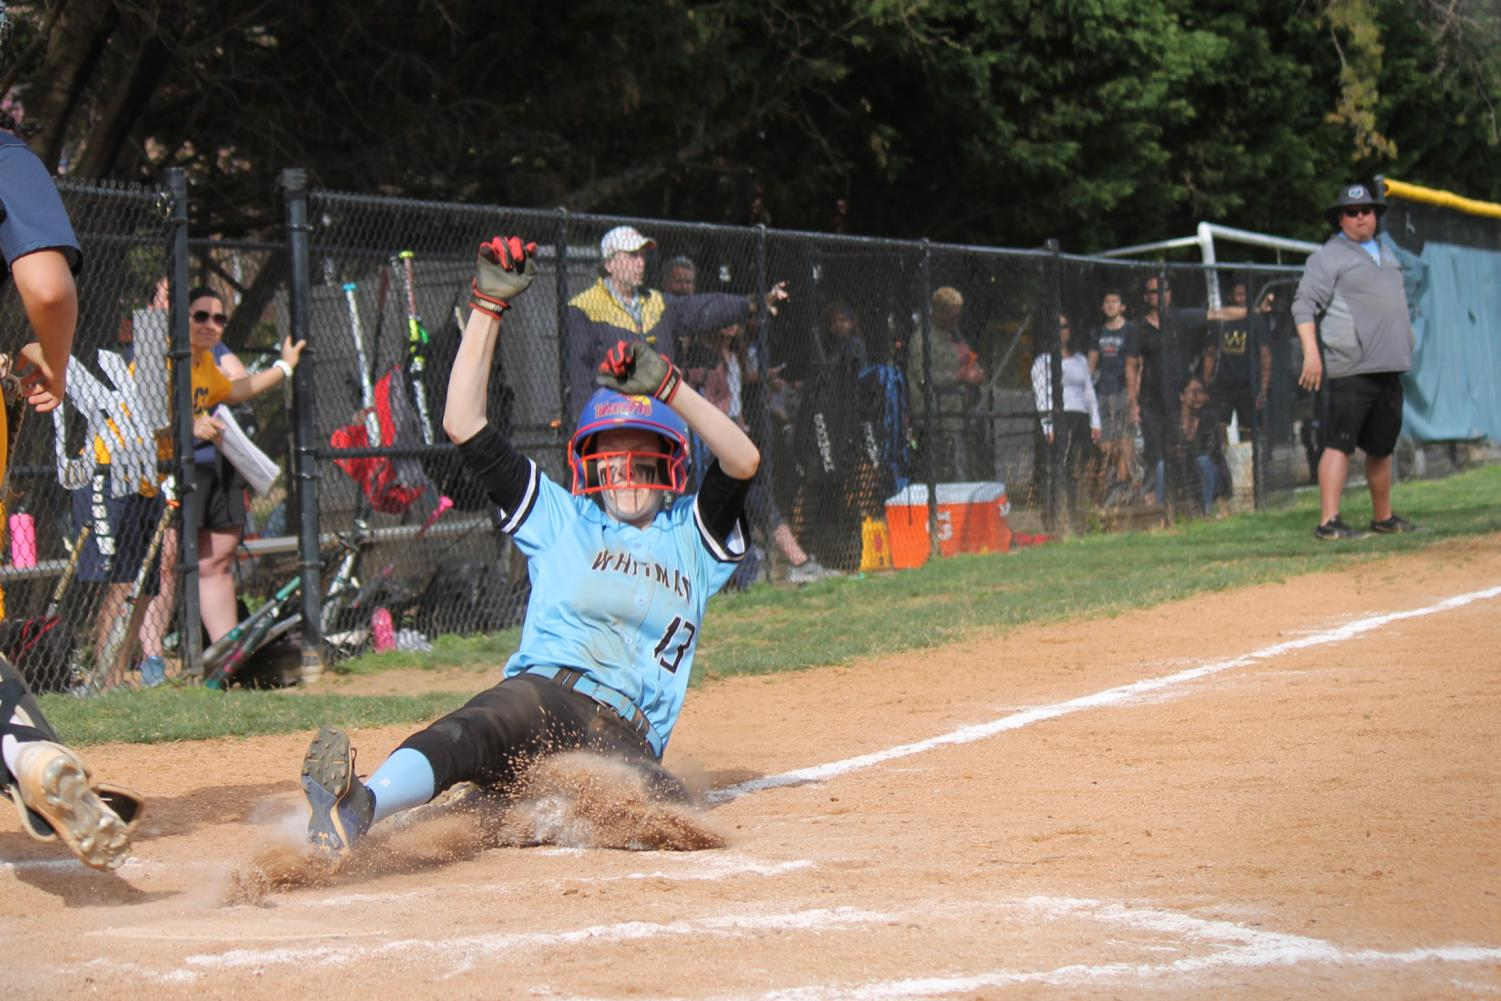 Senior Anna Koretsky slides into home base on a close play to score a run for the Vikes during their game against the B–CC Barons. I followed the team the week of April 9-13 to find out what has made them so successful this year.